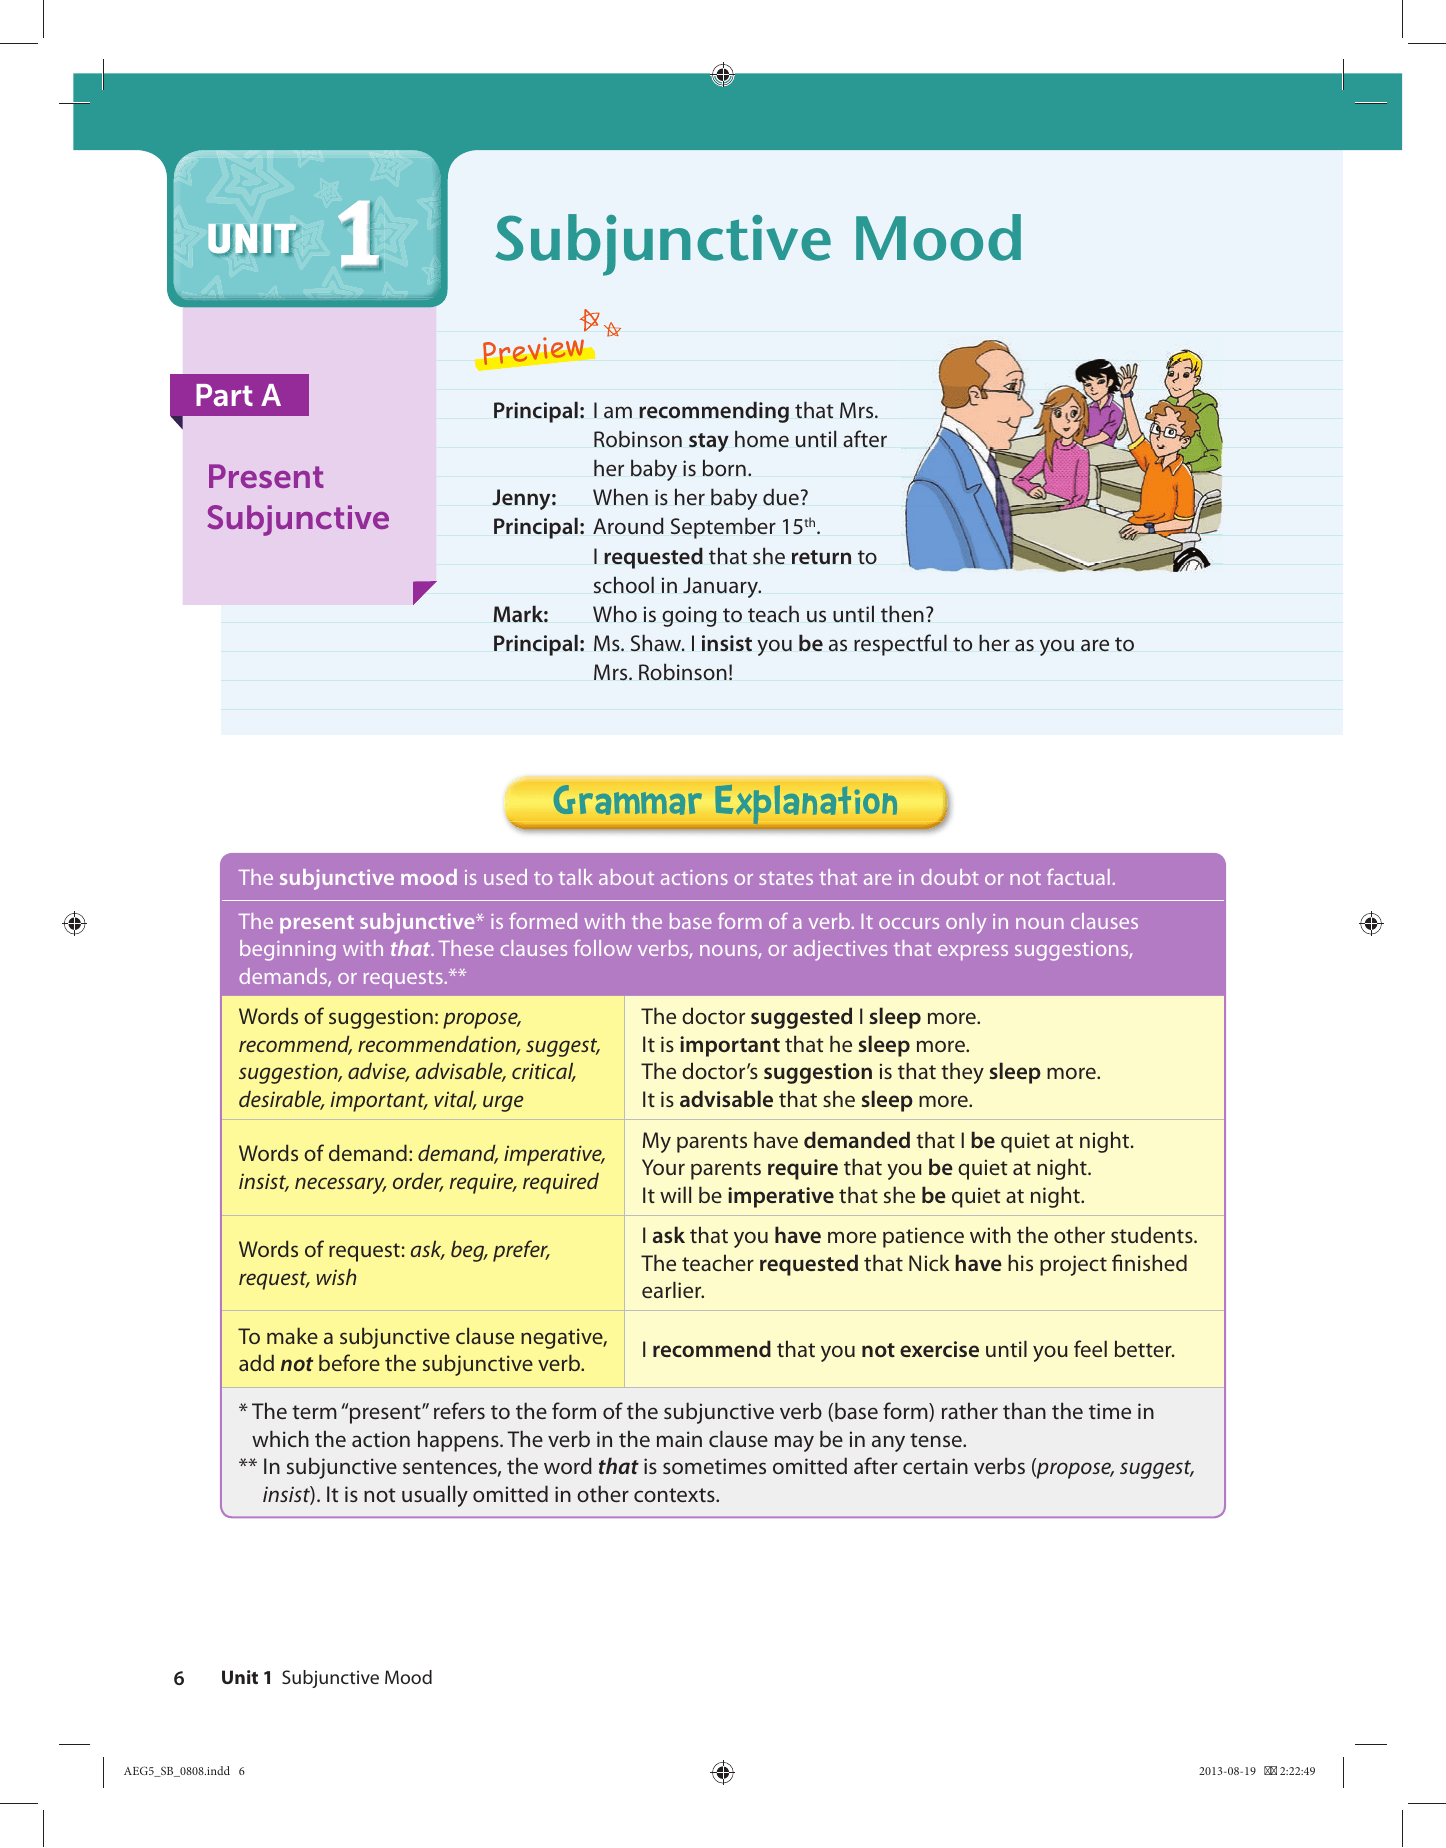 Present Subjunctive English : present, subjunctive, english, Subjunctive